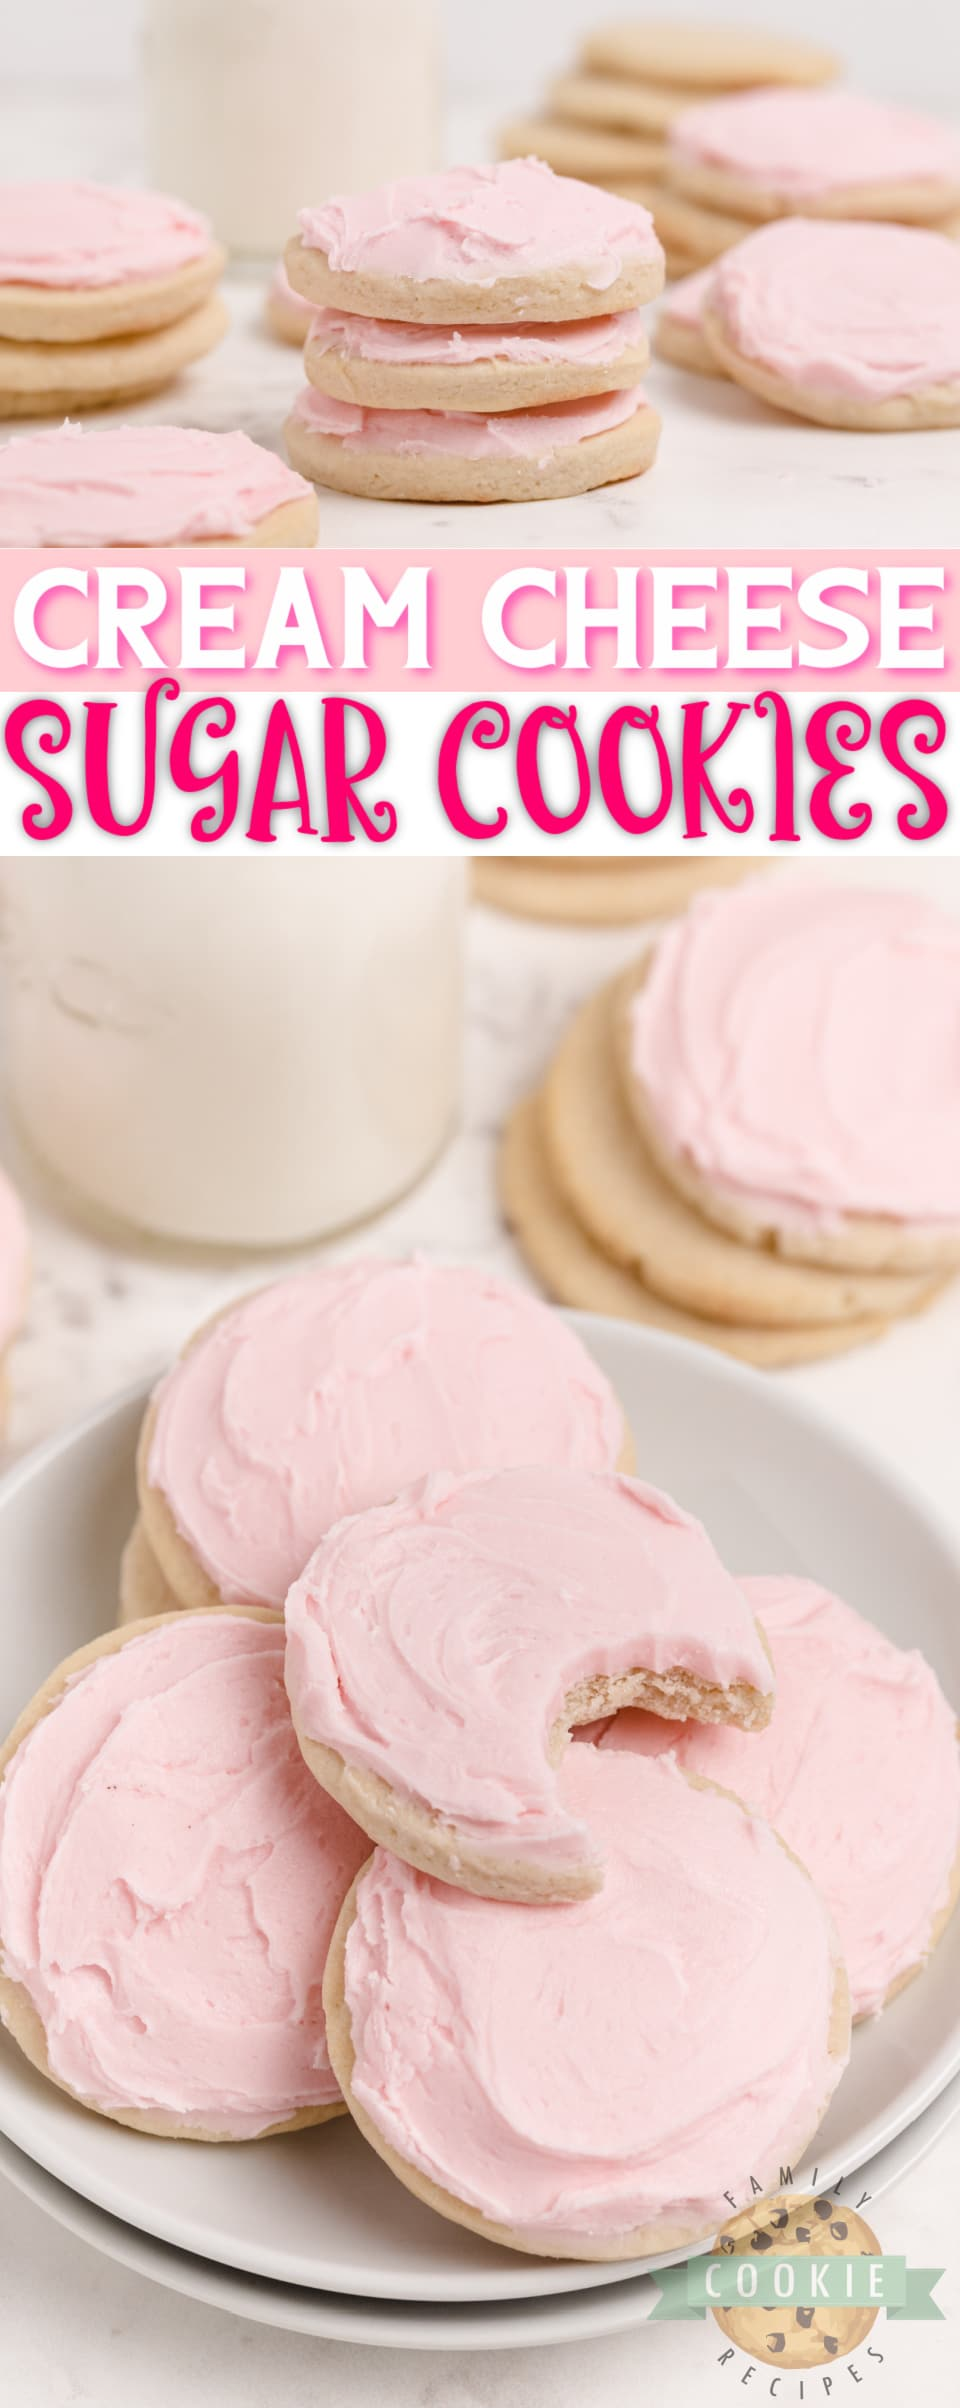 Cream Cheese Sugar Cookies are soft, thick and easily the best sugar cookie recipe I've ever tried. These sugar cookies hold their shape when baked and they are moist and perfectly sweet too! via @buttergirls